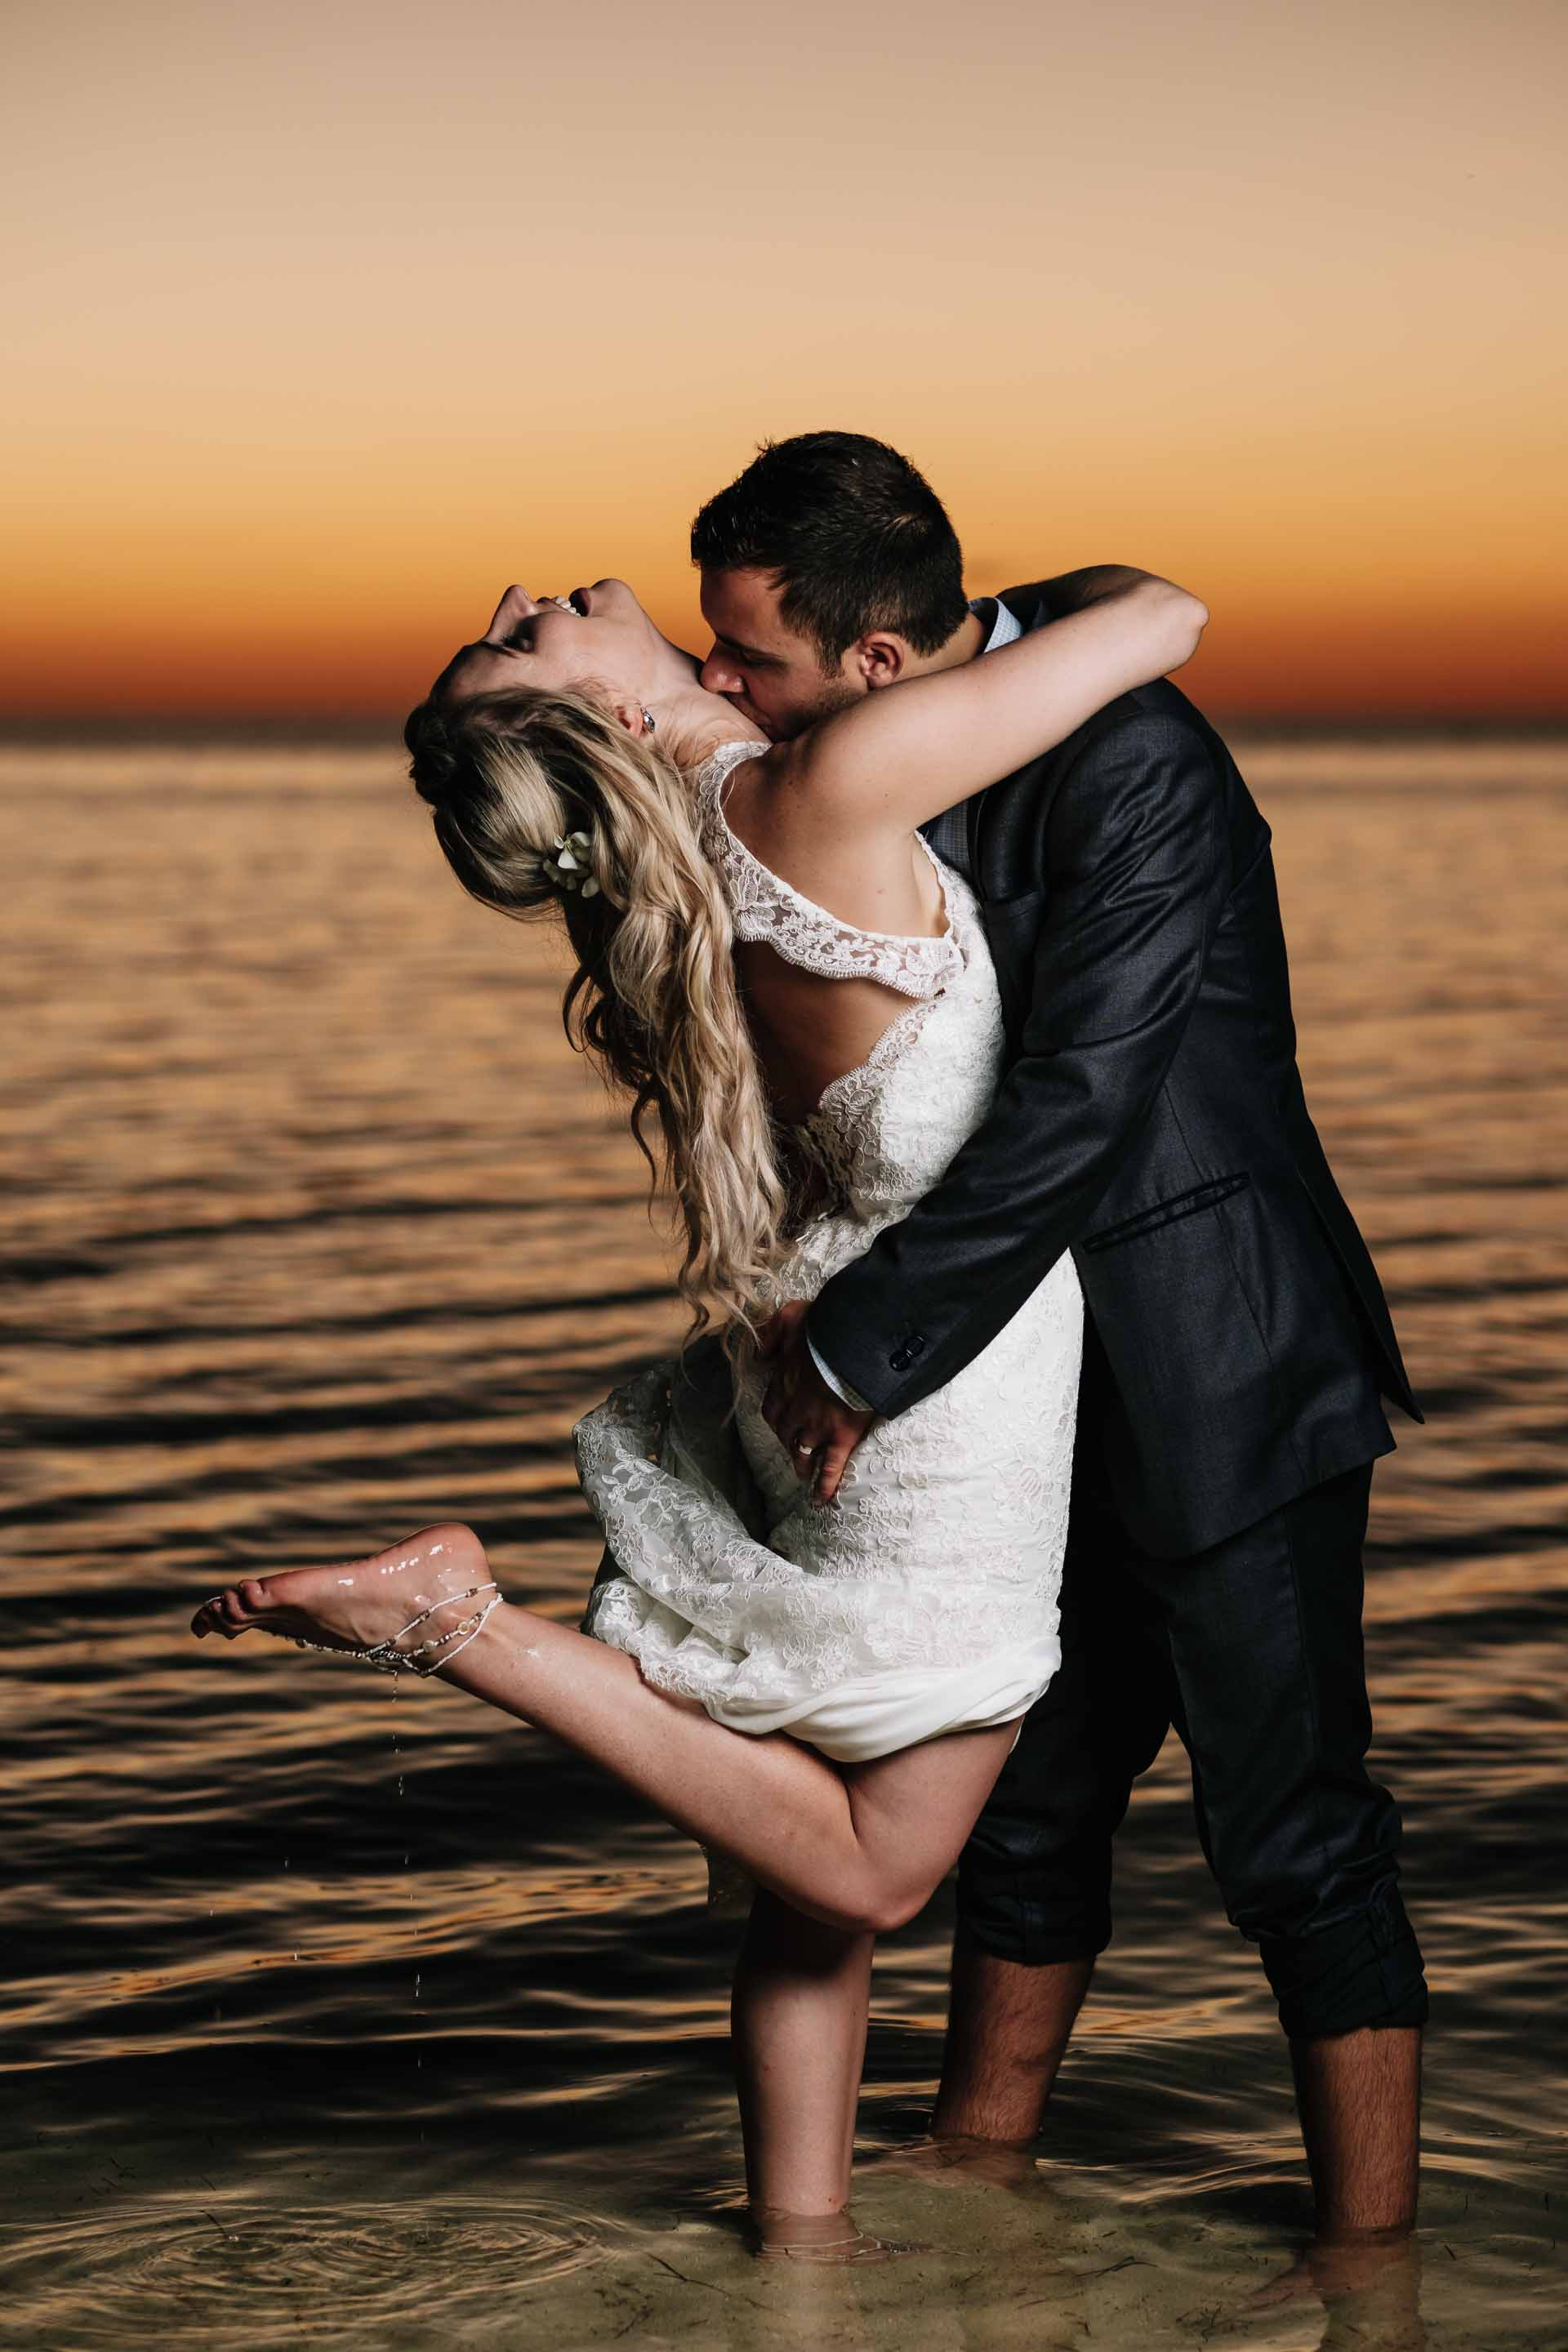 the bride and groom have fun in the warm water with the stunning backdrop of deep reds and oranges of a sunset